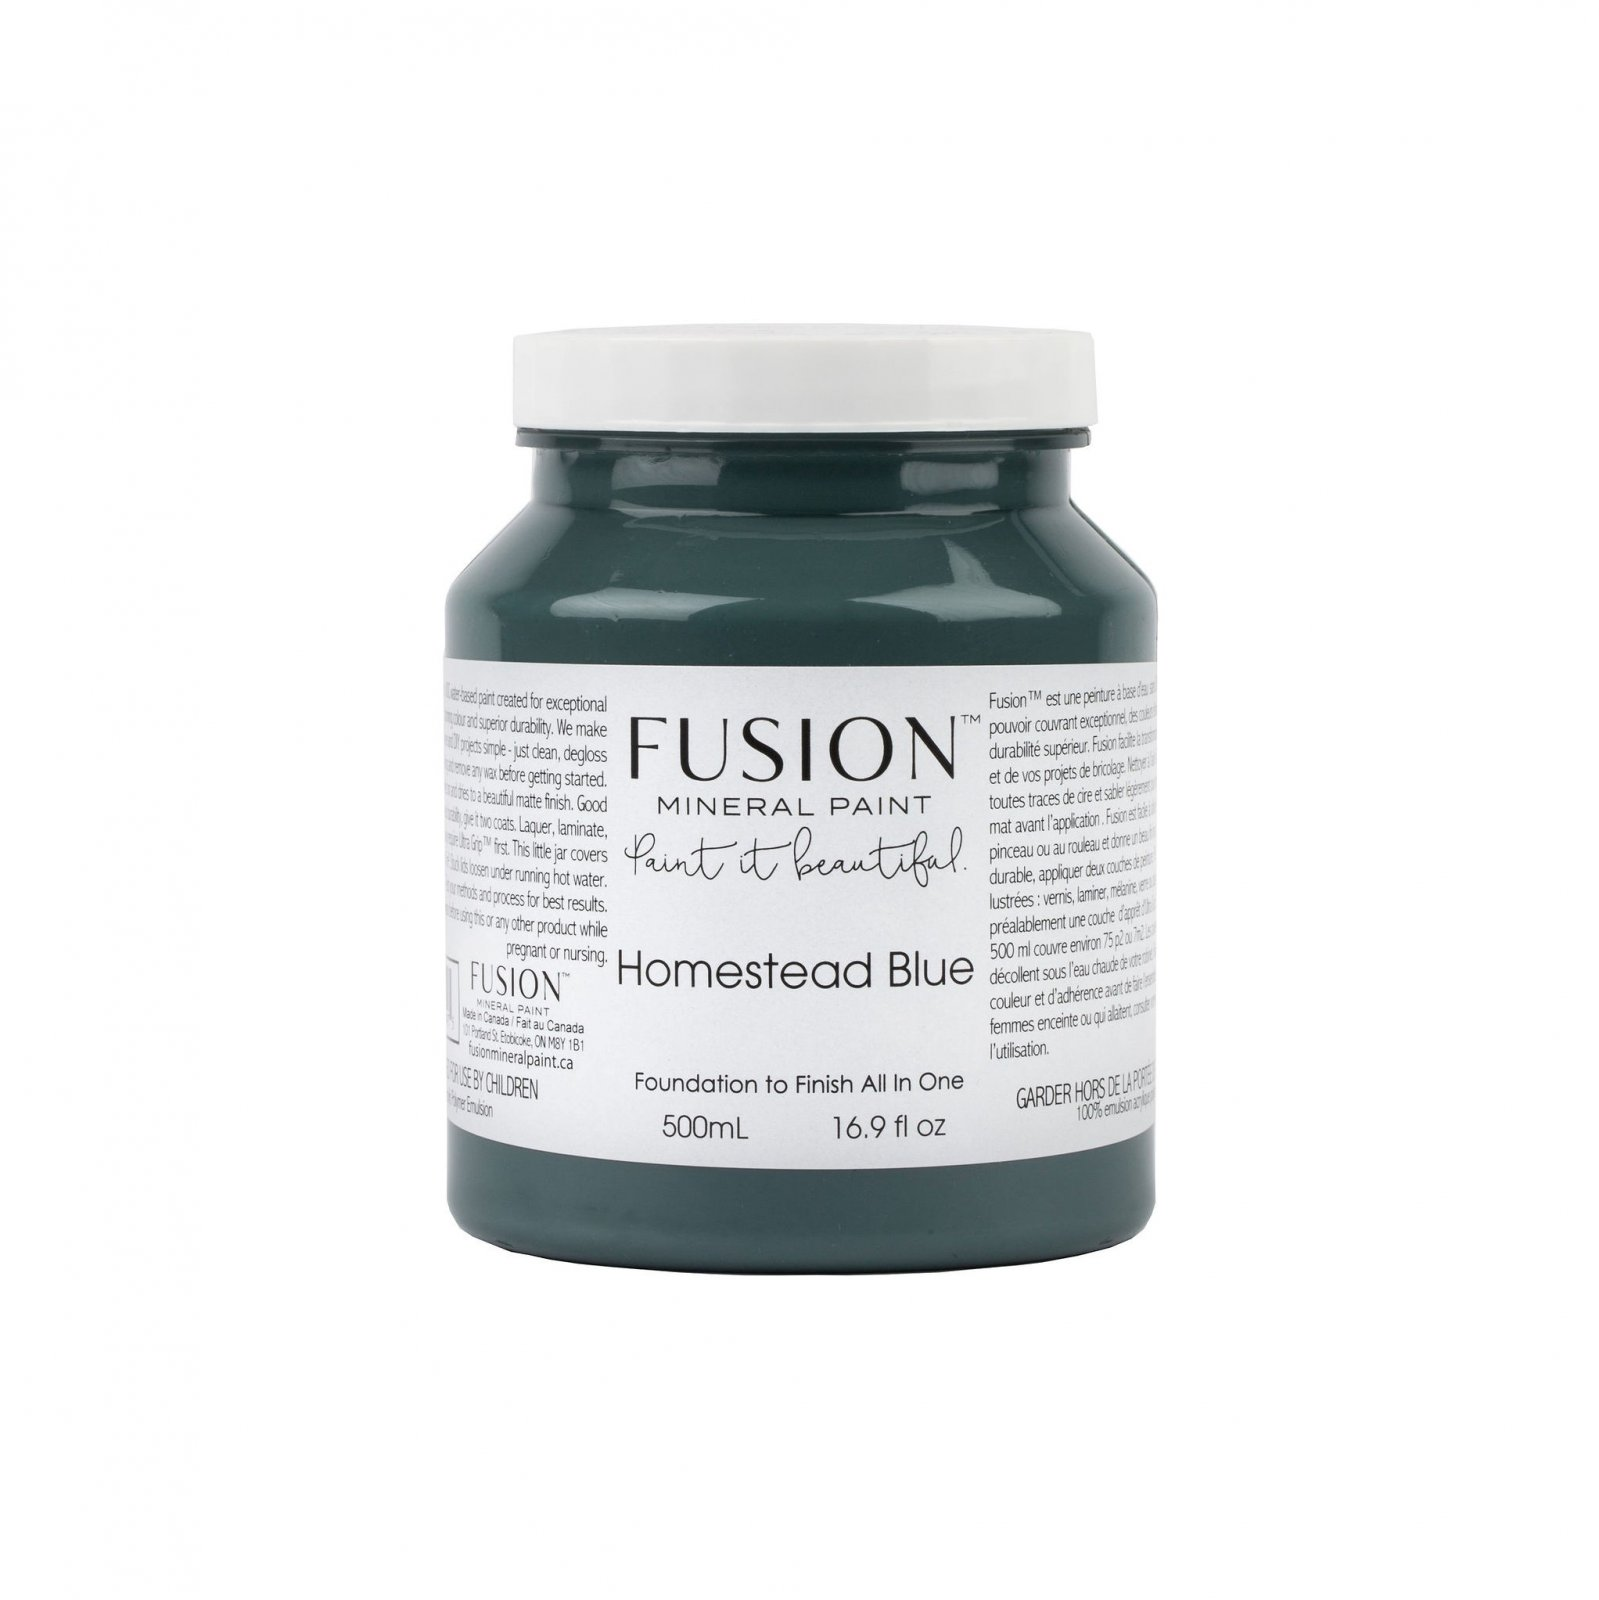 Homestead Blue Pint Fusion Mineral Paint